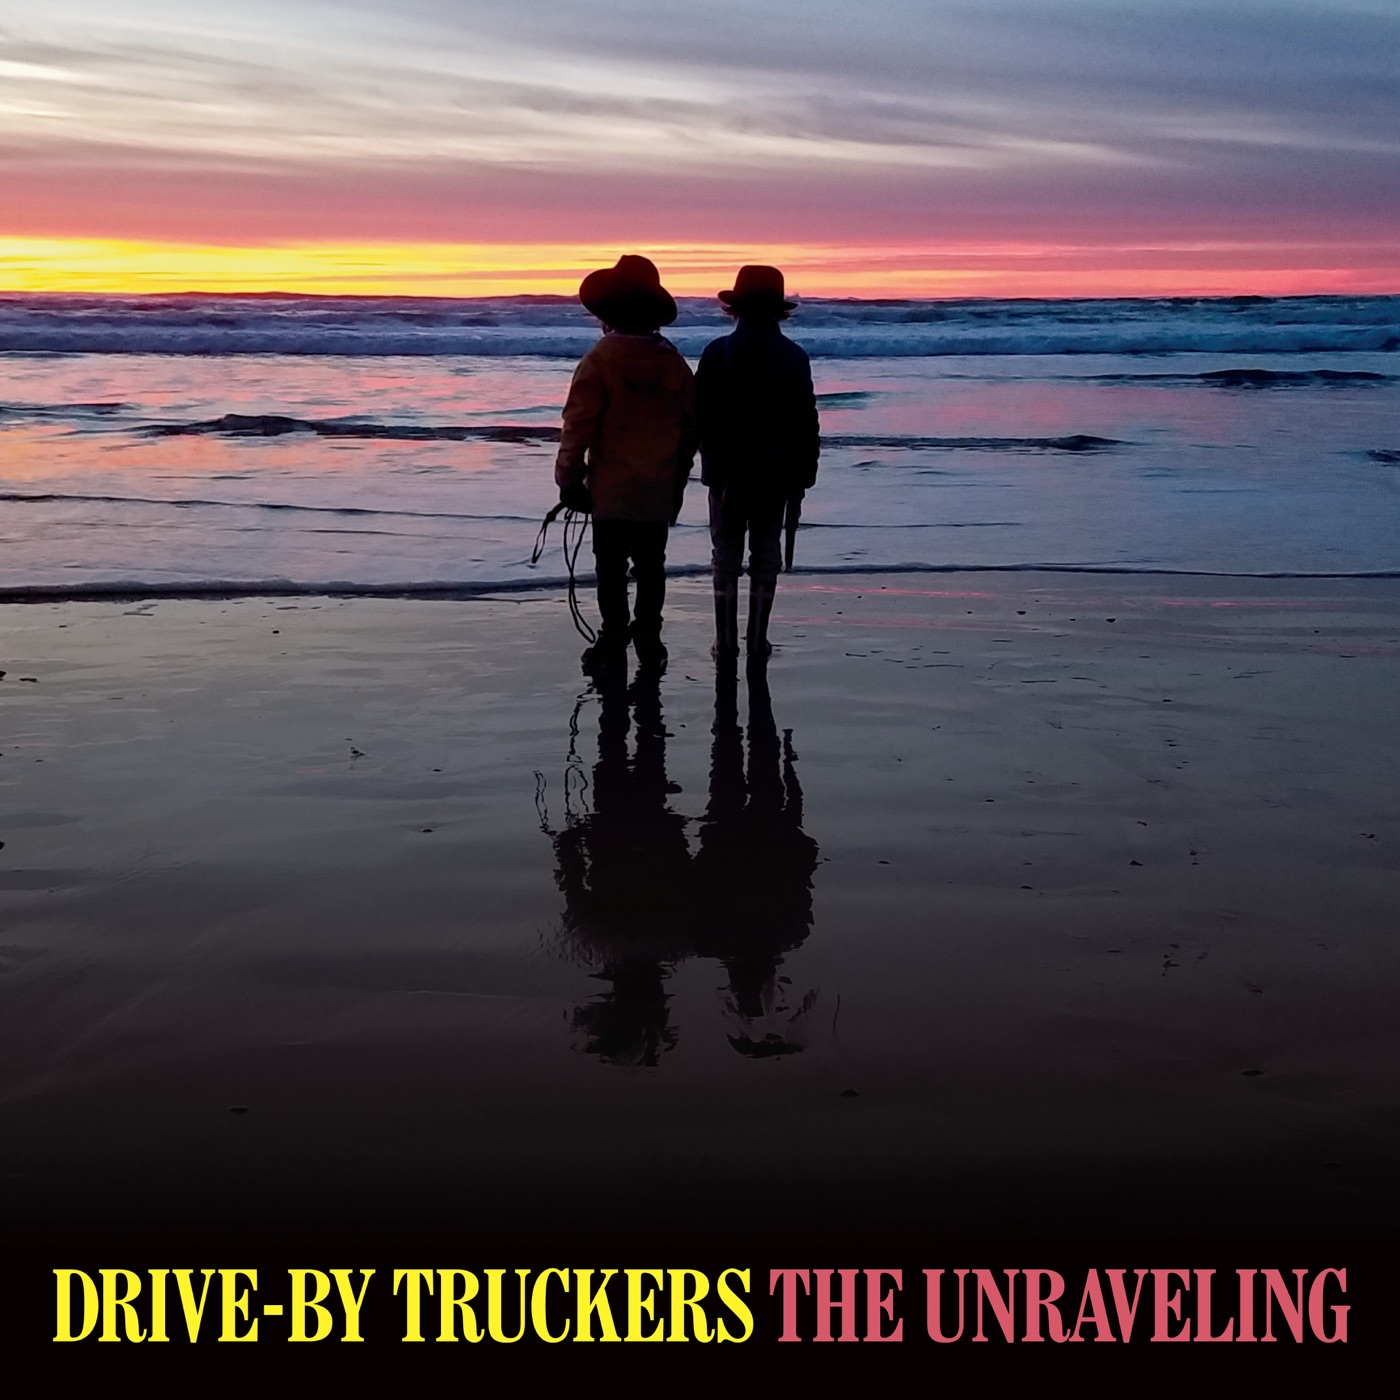 Drive-By Truckers - The Unraveling (2020)